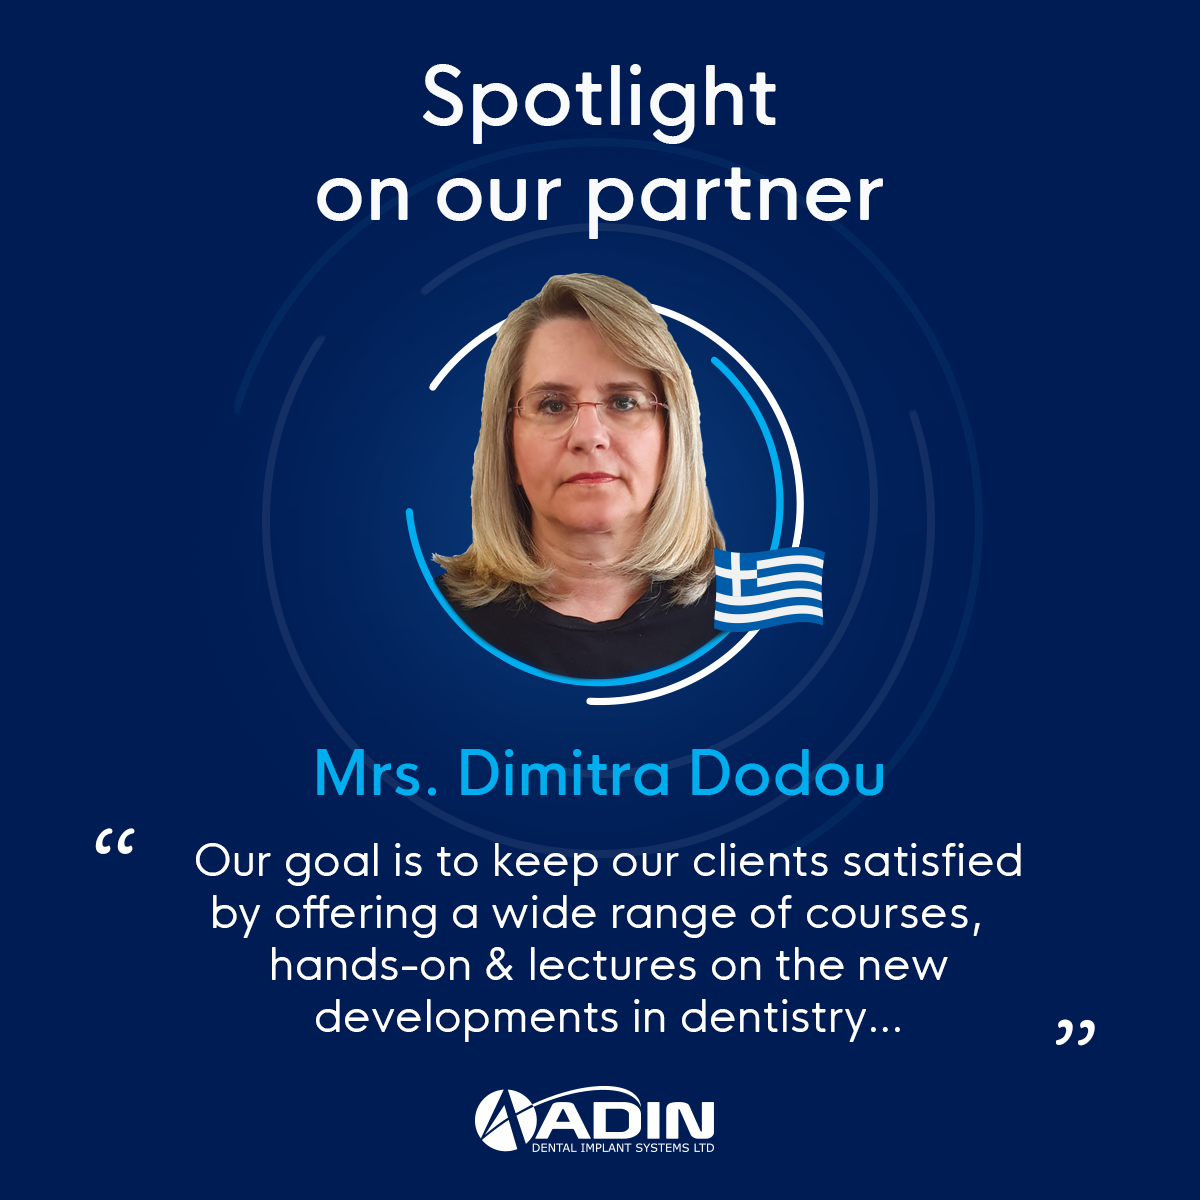 Spotlight on our partner Mrs. Dimitra Dodou, Greece